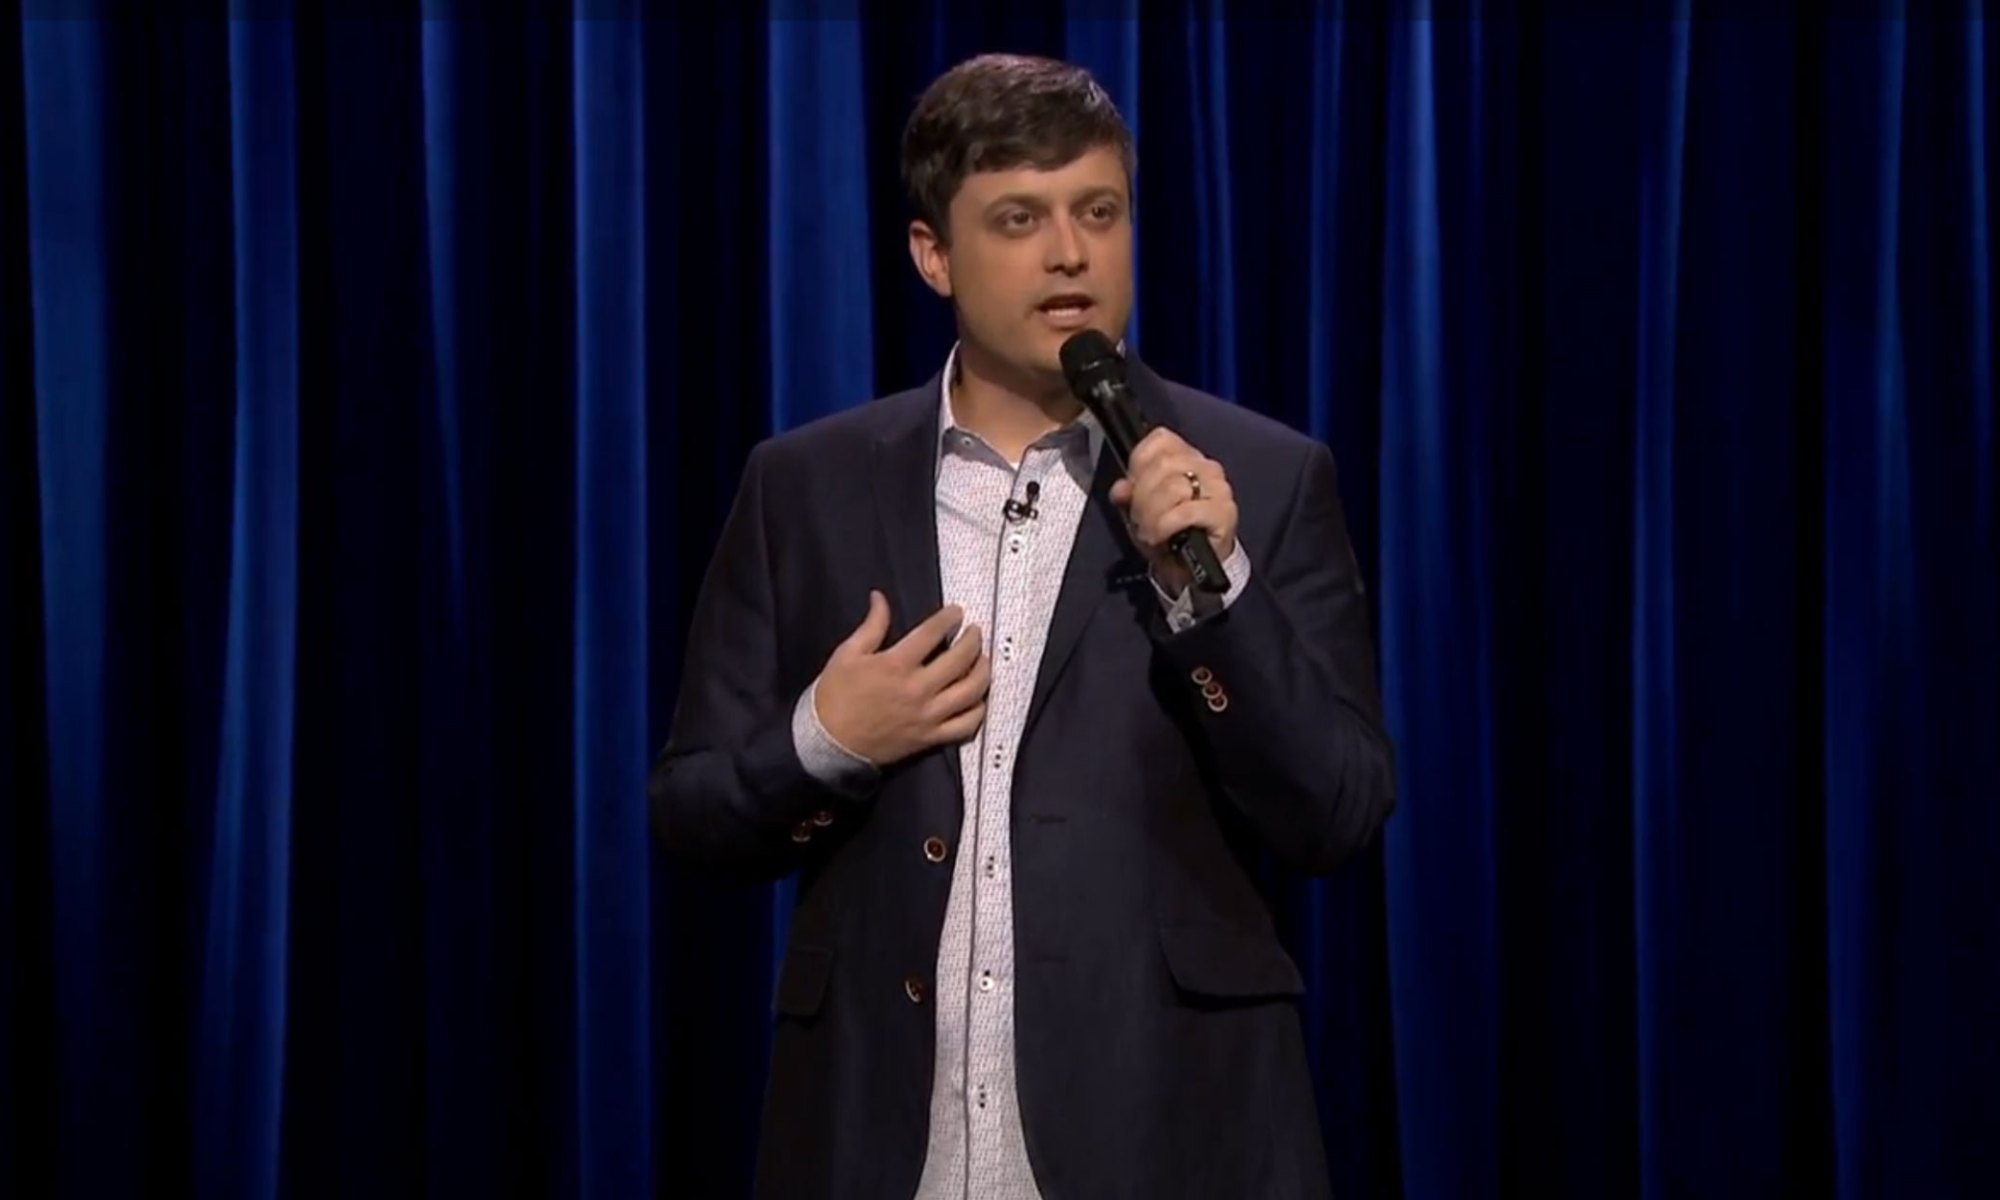 Nate Bargatze on The Tonight Show starring Jimmy Fallon April 21, 2015